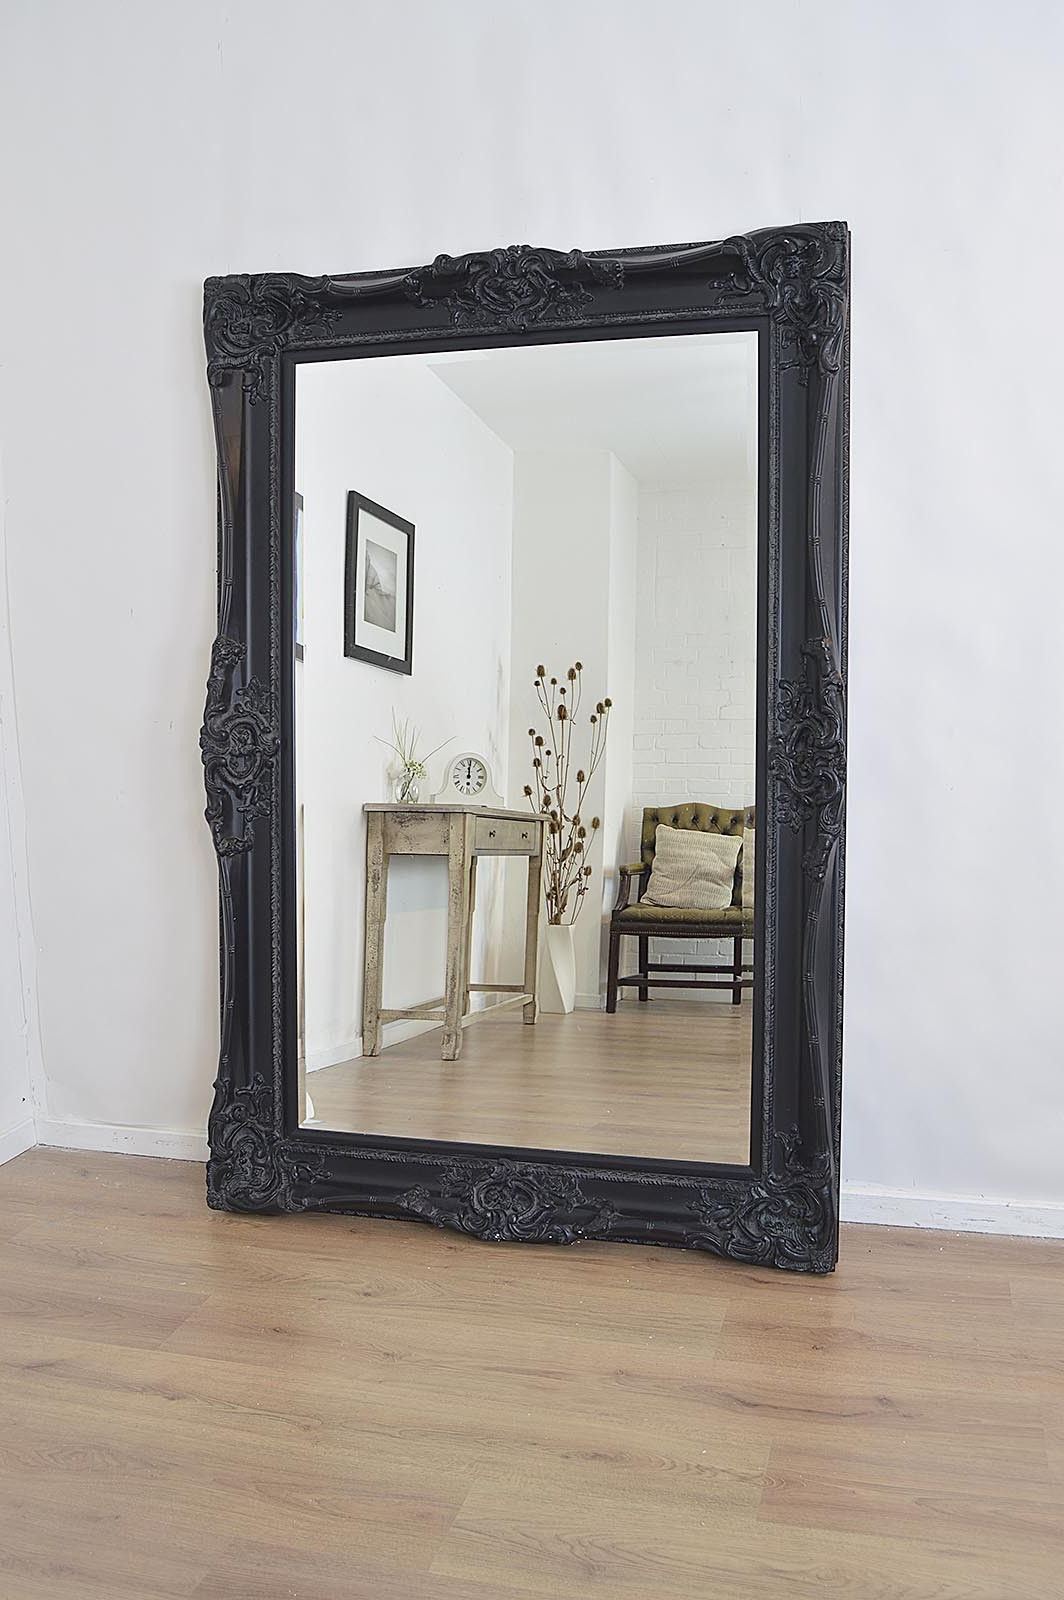 2020 6ft X 4ft Large Black Antique Style Rectangle Wood Wall Mirror Inside Large Black Framed Wall Mirrors (View 5 of 20)